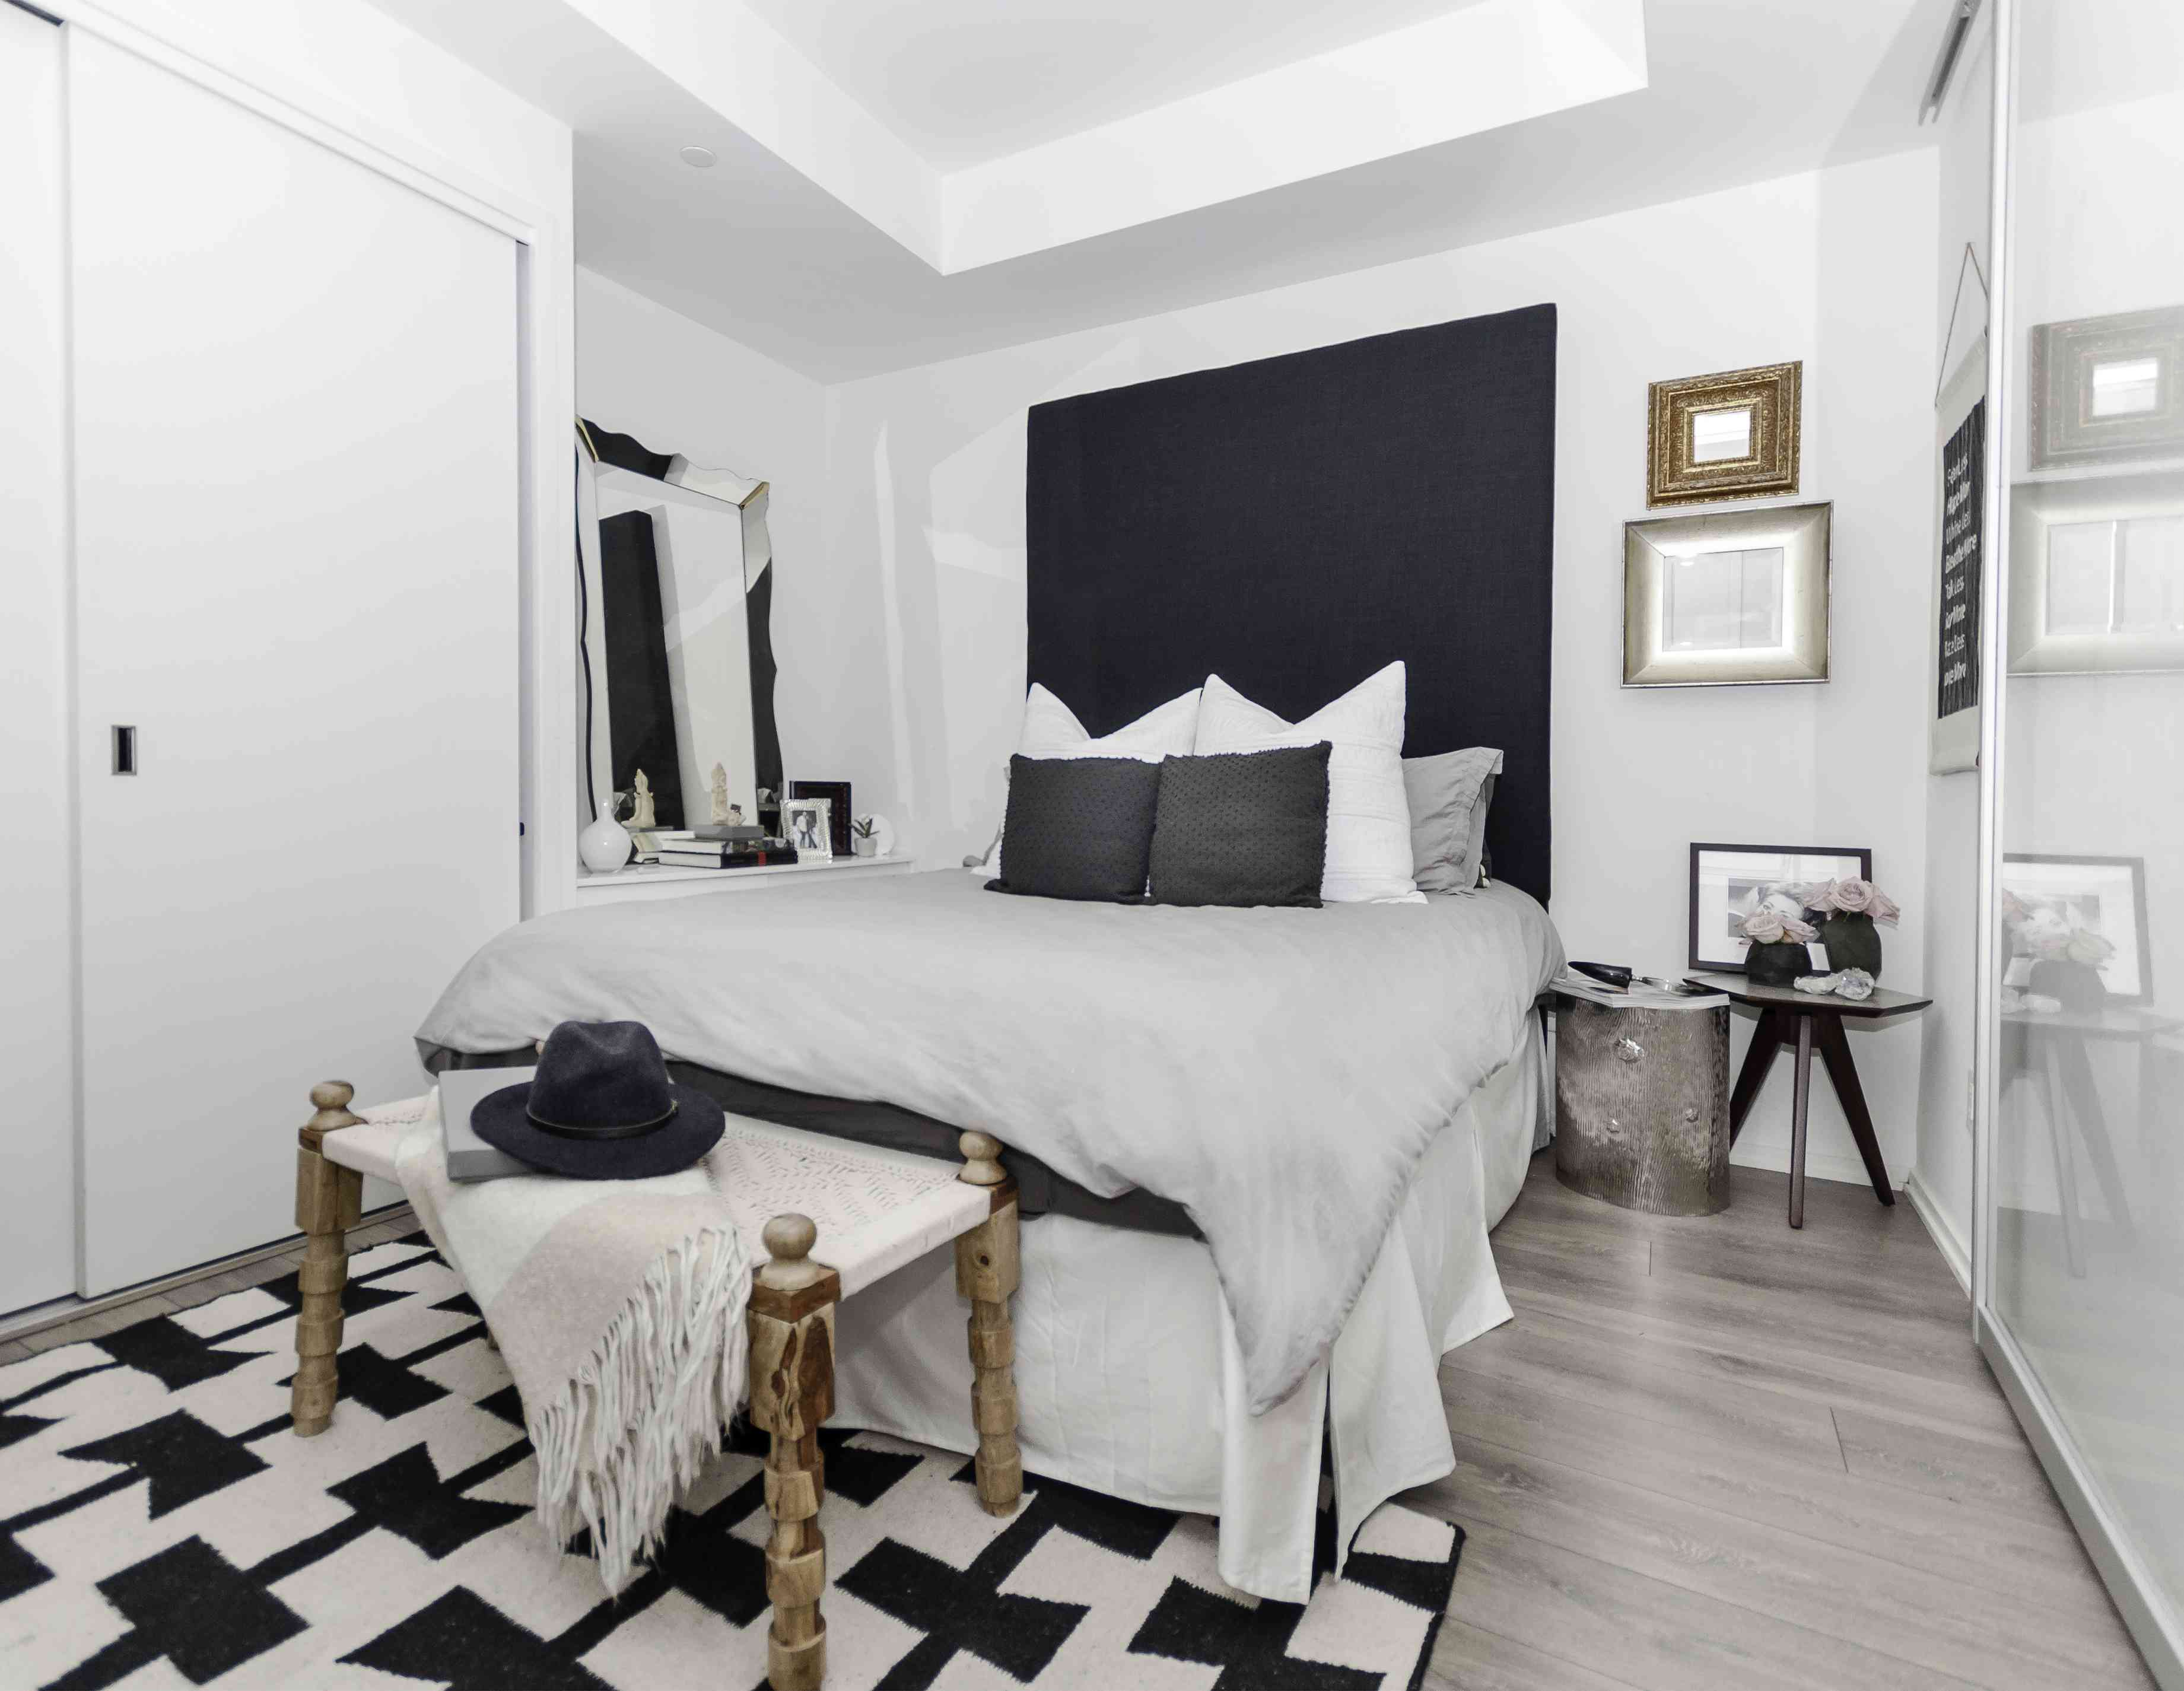 White and black bedroom with large black headboard.